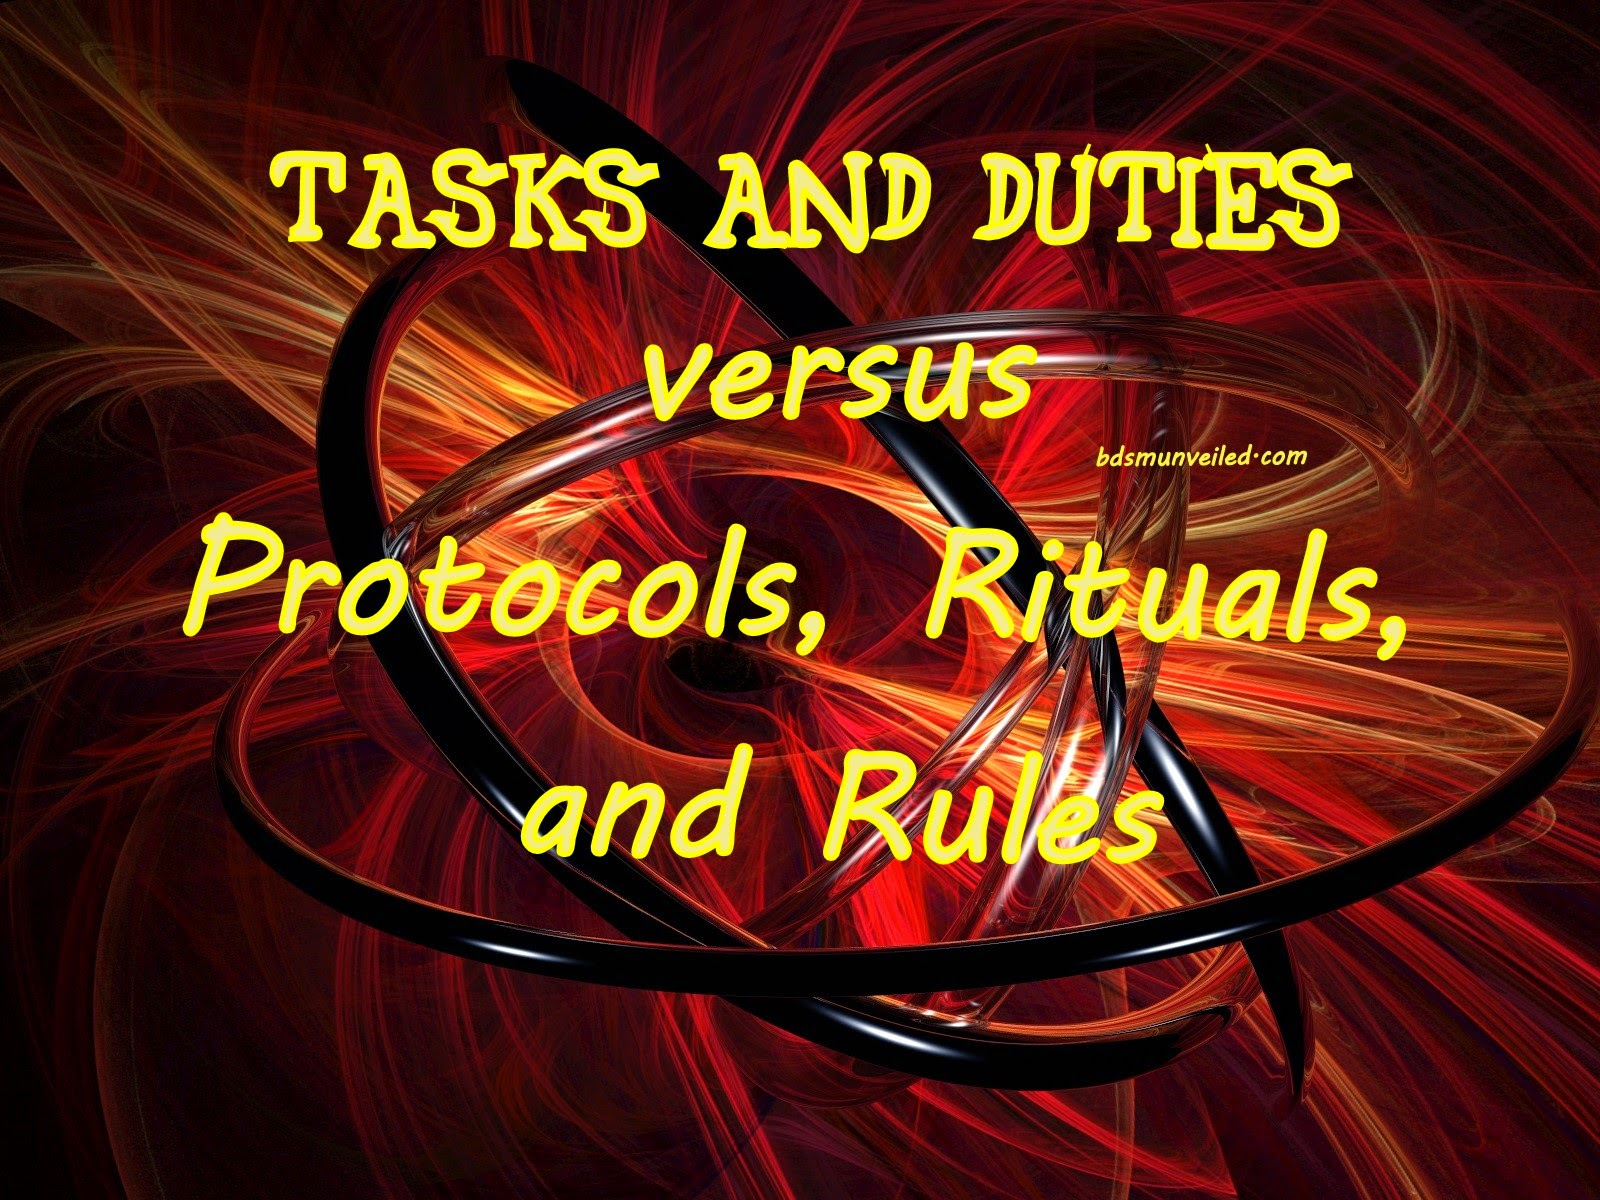 Tasks vs Rituals, Protocols, Rules